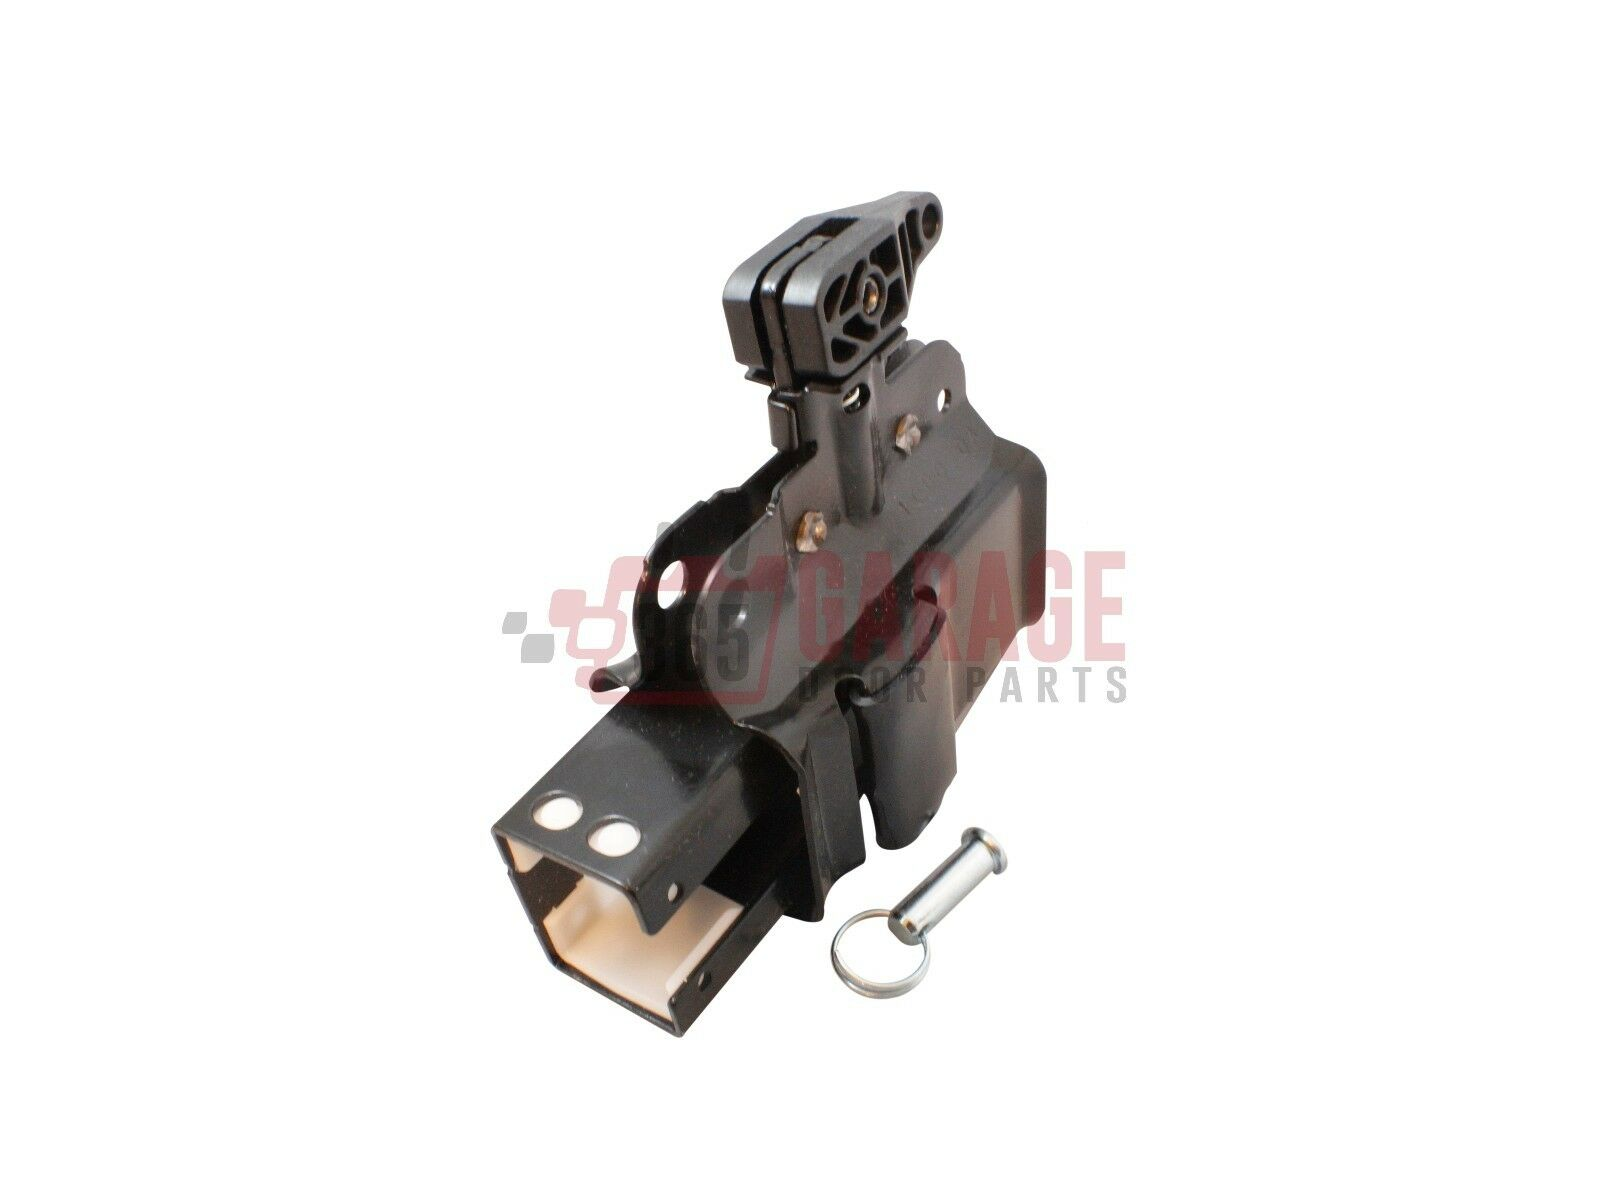 Liftmaster 41c5141 1 Trolley Assembly For Chain Drive